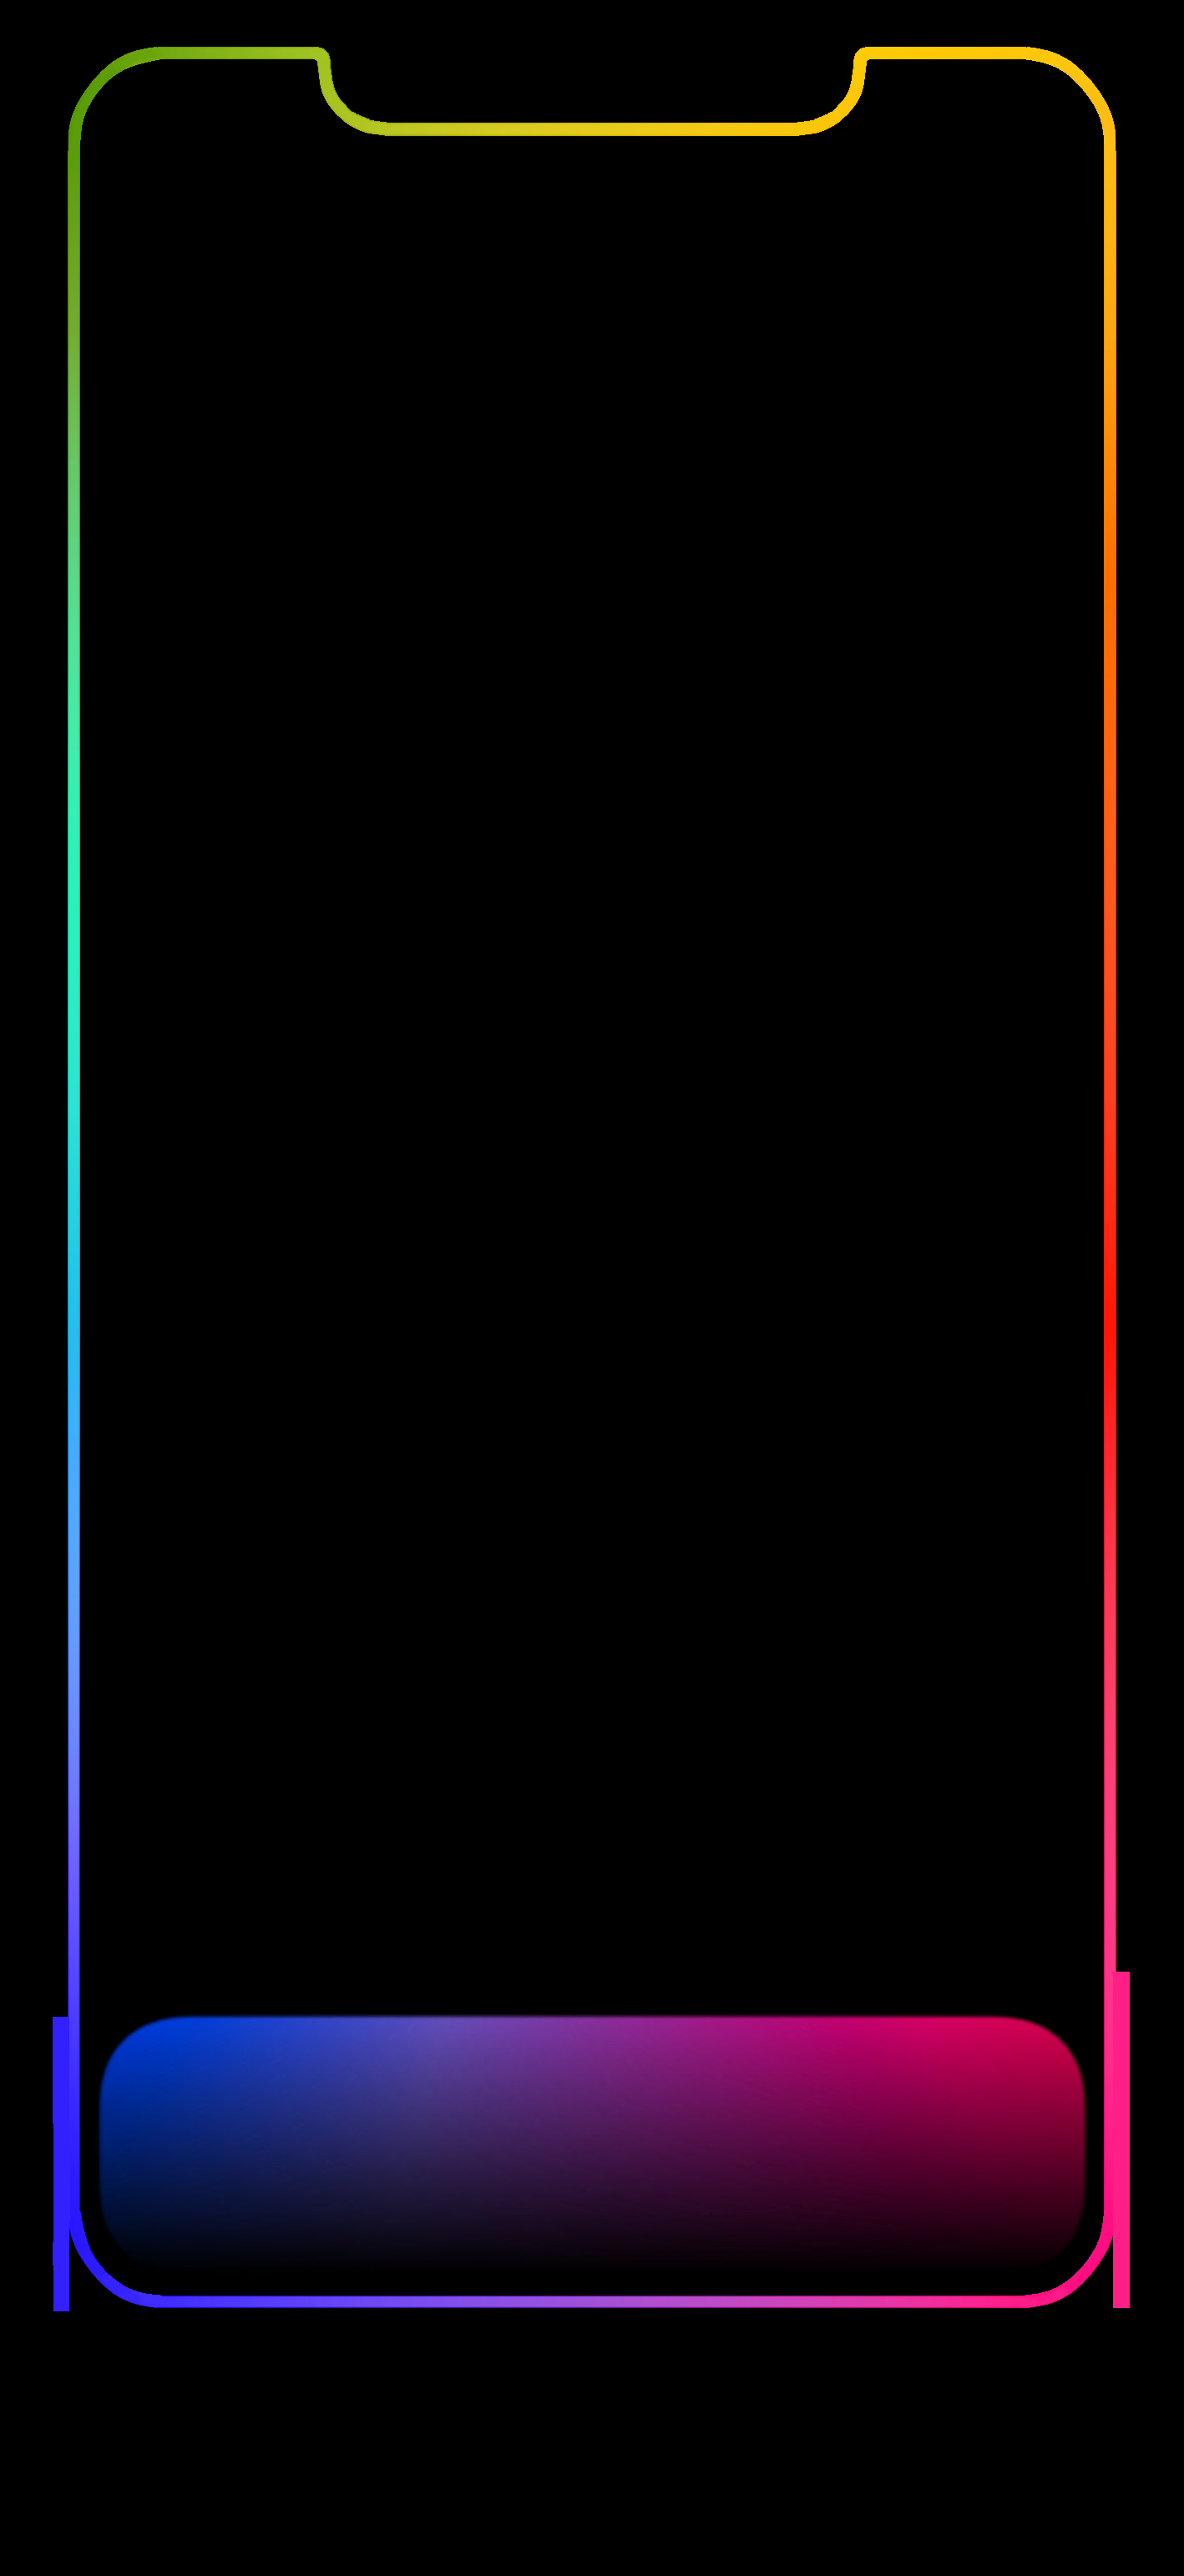 Iphone Xs Max Outline Wallpapers Sfondi Iphone Xs Max Free